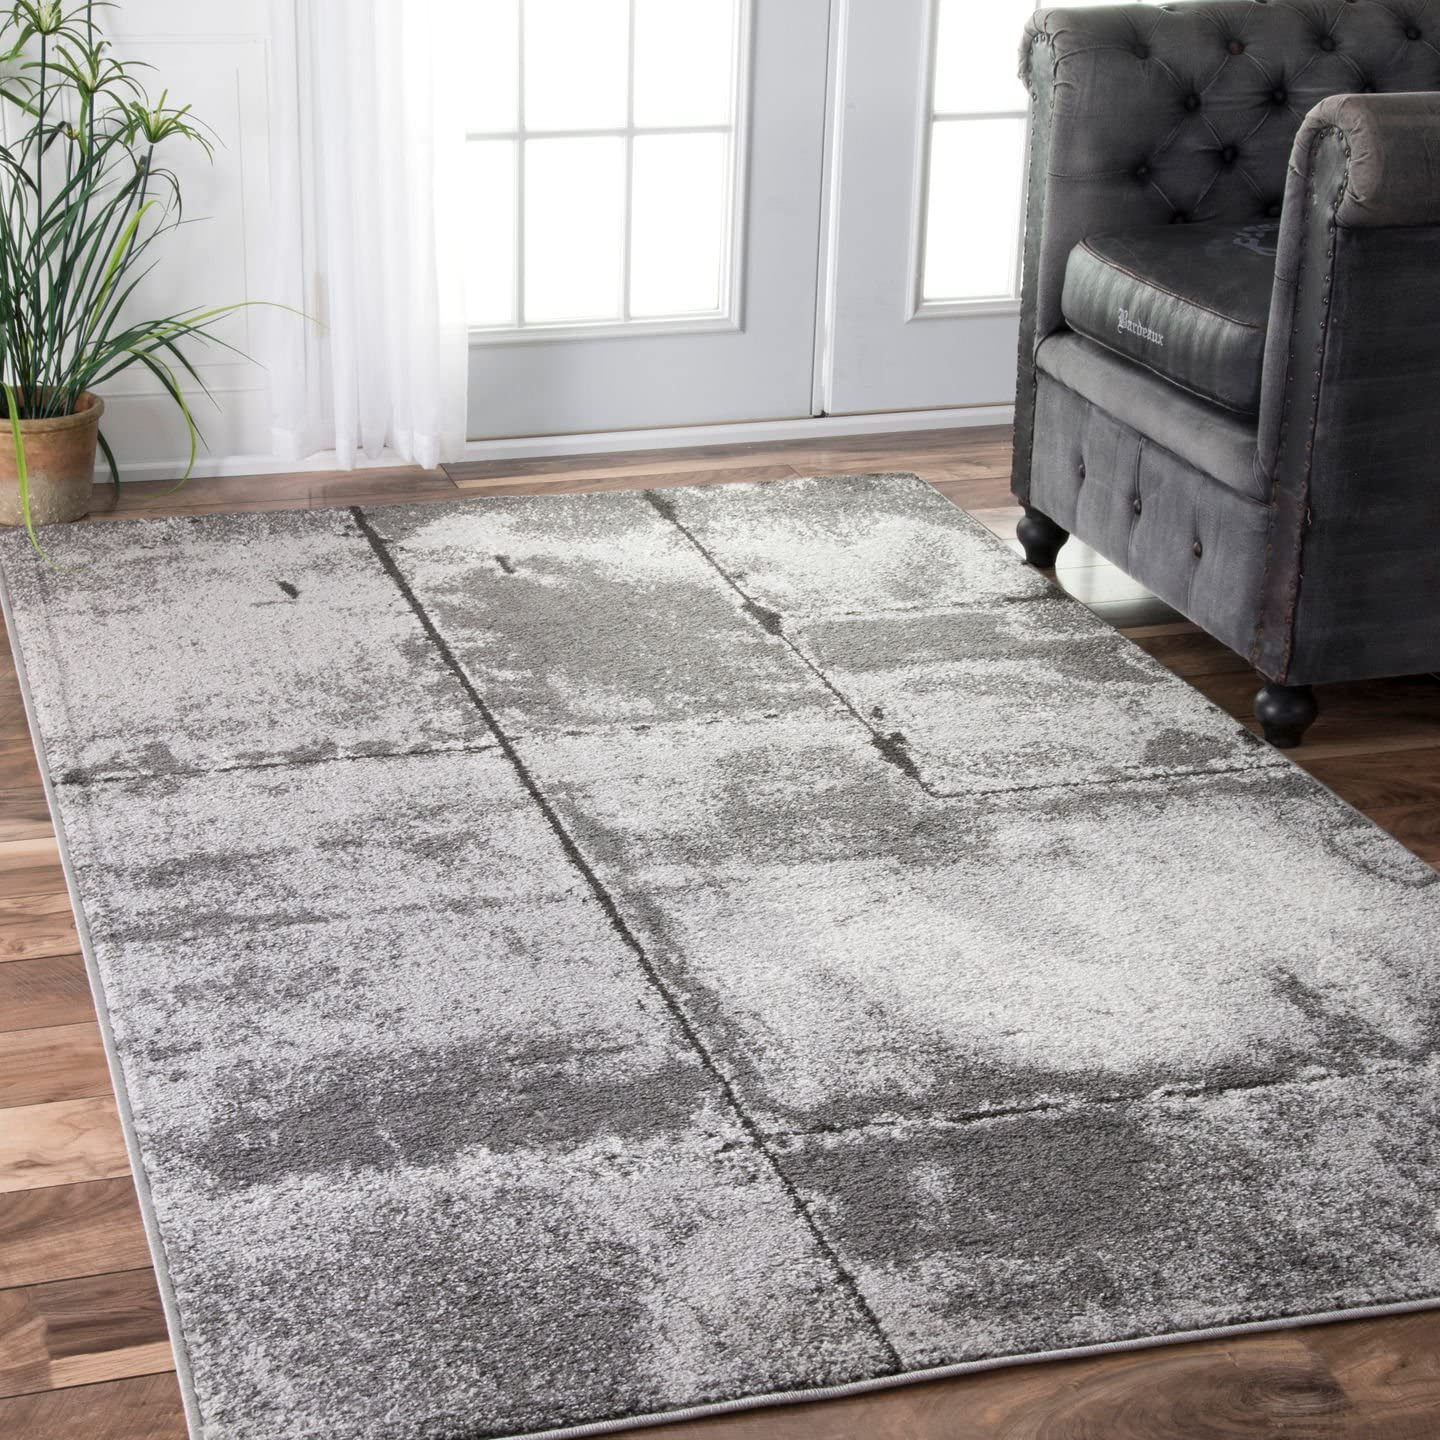 nuLOOM Plain Lines Contemporary Area Rug